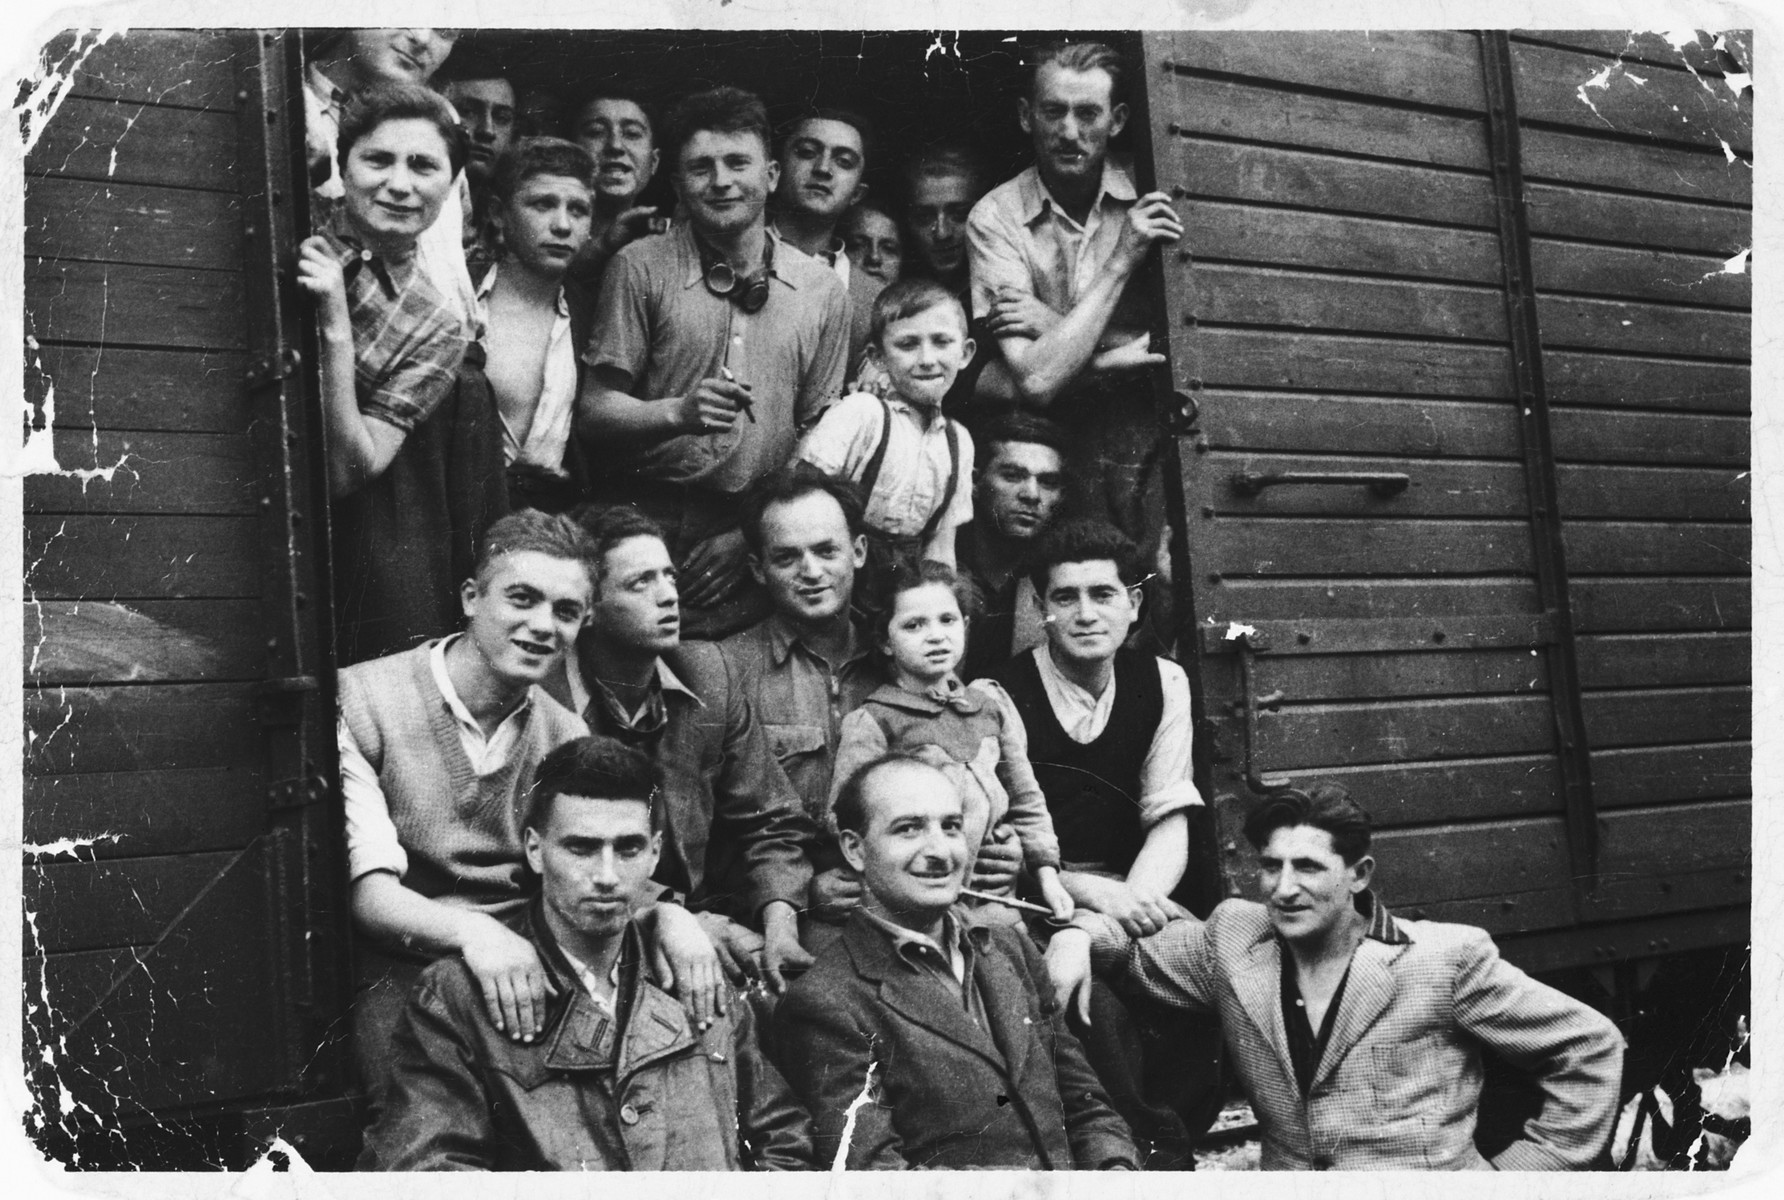 Jewish DPs look out the door of a cattle car as they cross the border from Austria into Italy.  Those pictured include Baruch and Zev Winer .  The boy above them is Moti Ravid.  Also pcitured are Abraham, Rachel and Channa Lisogurski.